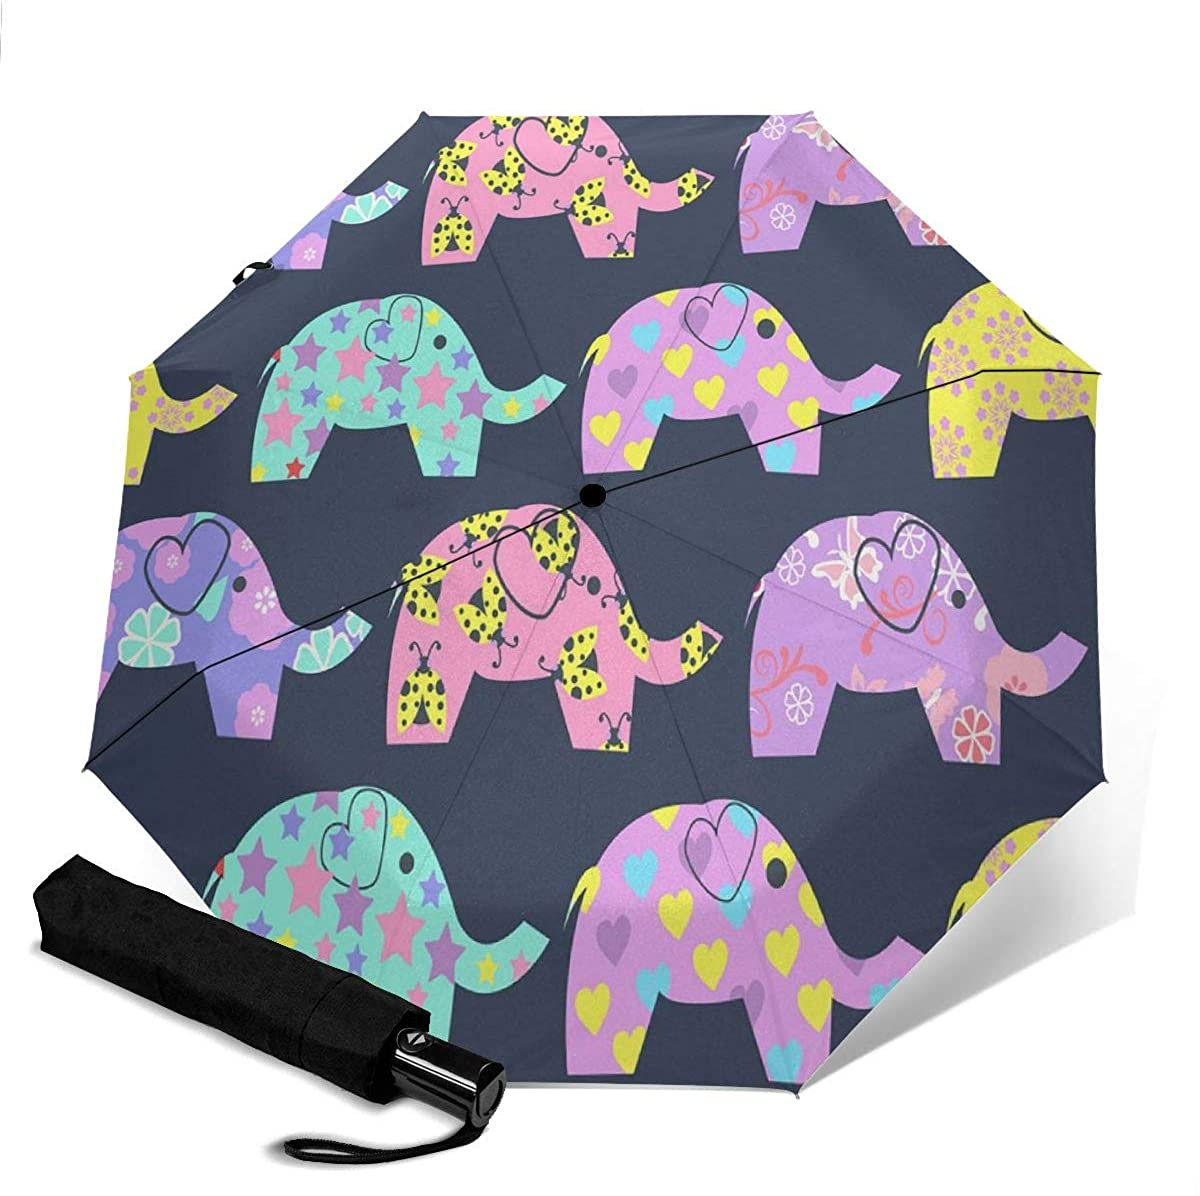 Colored Elephants With Different Patterns Compact Travel Umbrella Windproof Reinforced Canopy 8 Ribs Umbrella Auto Open And Close Button Personalized